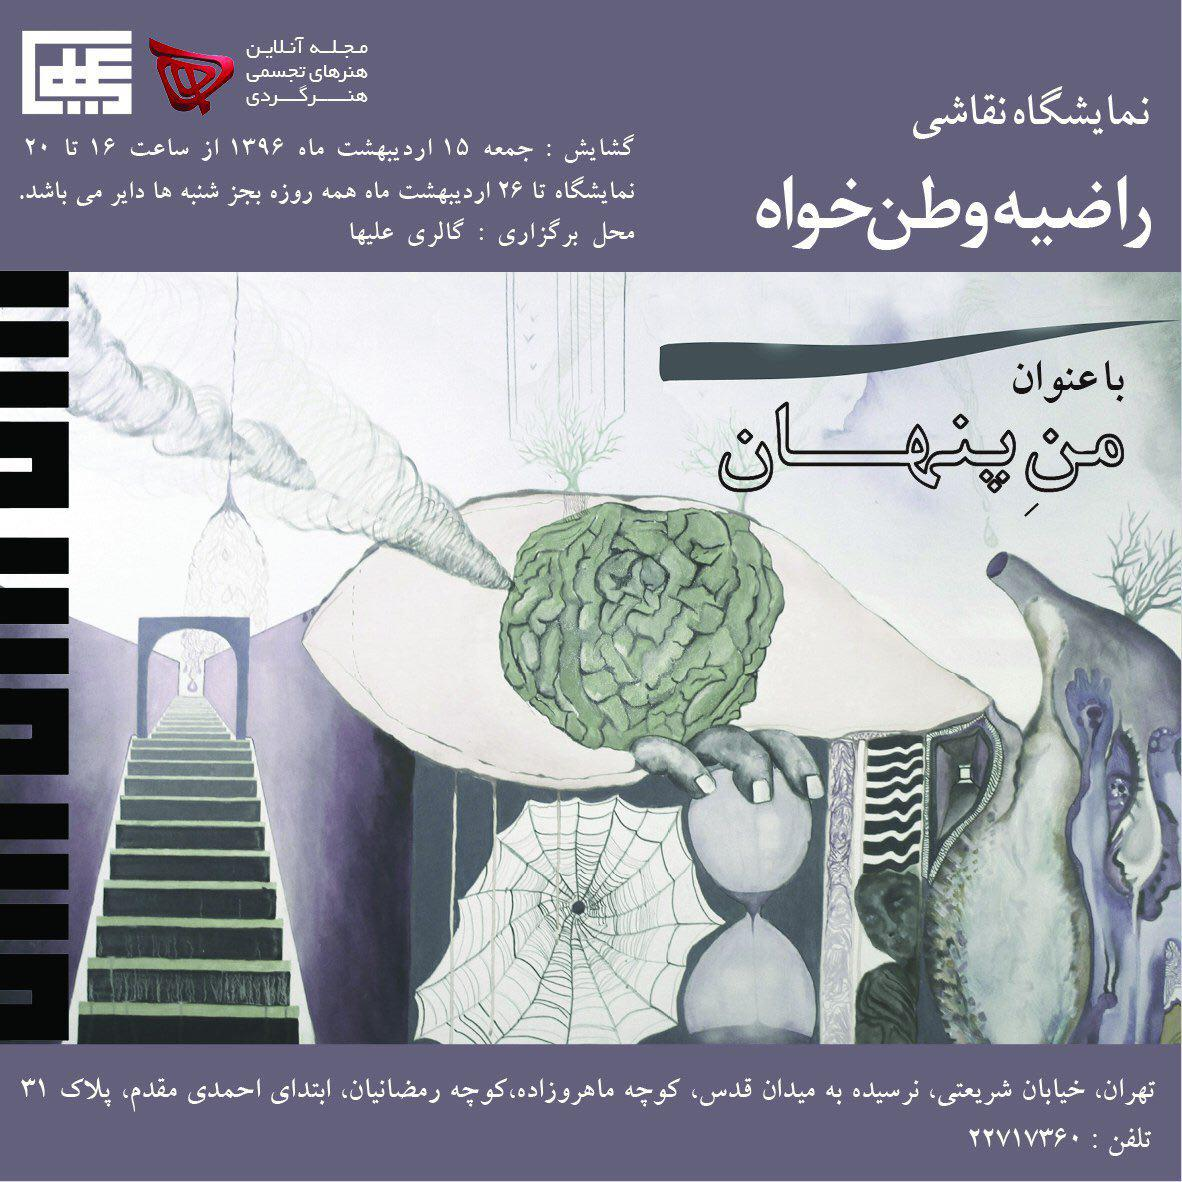 Solo Painting Exhibition By Razieh VatanKhah